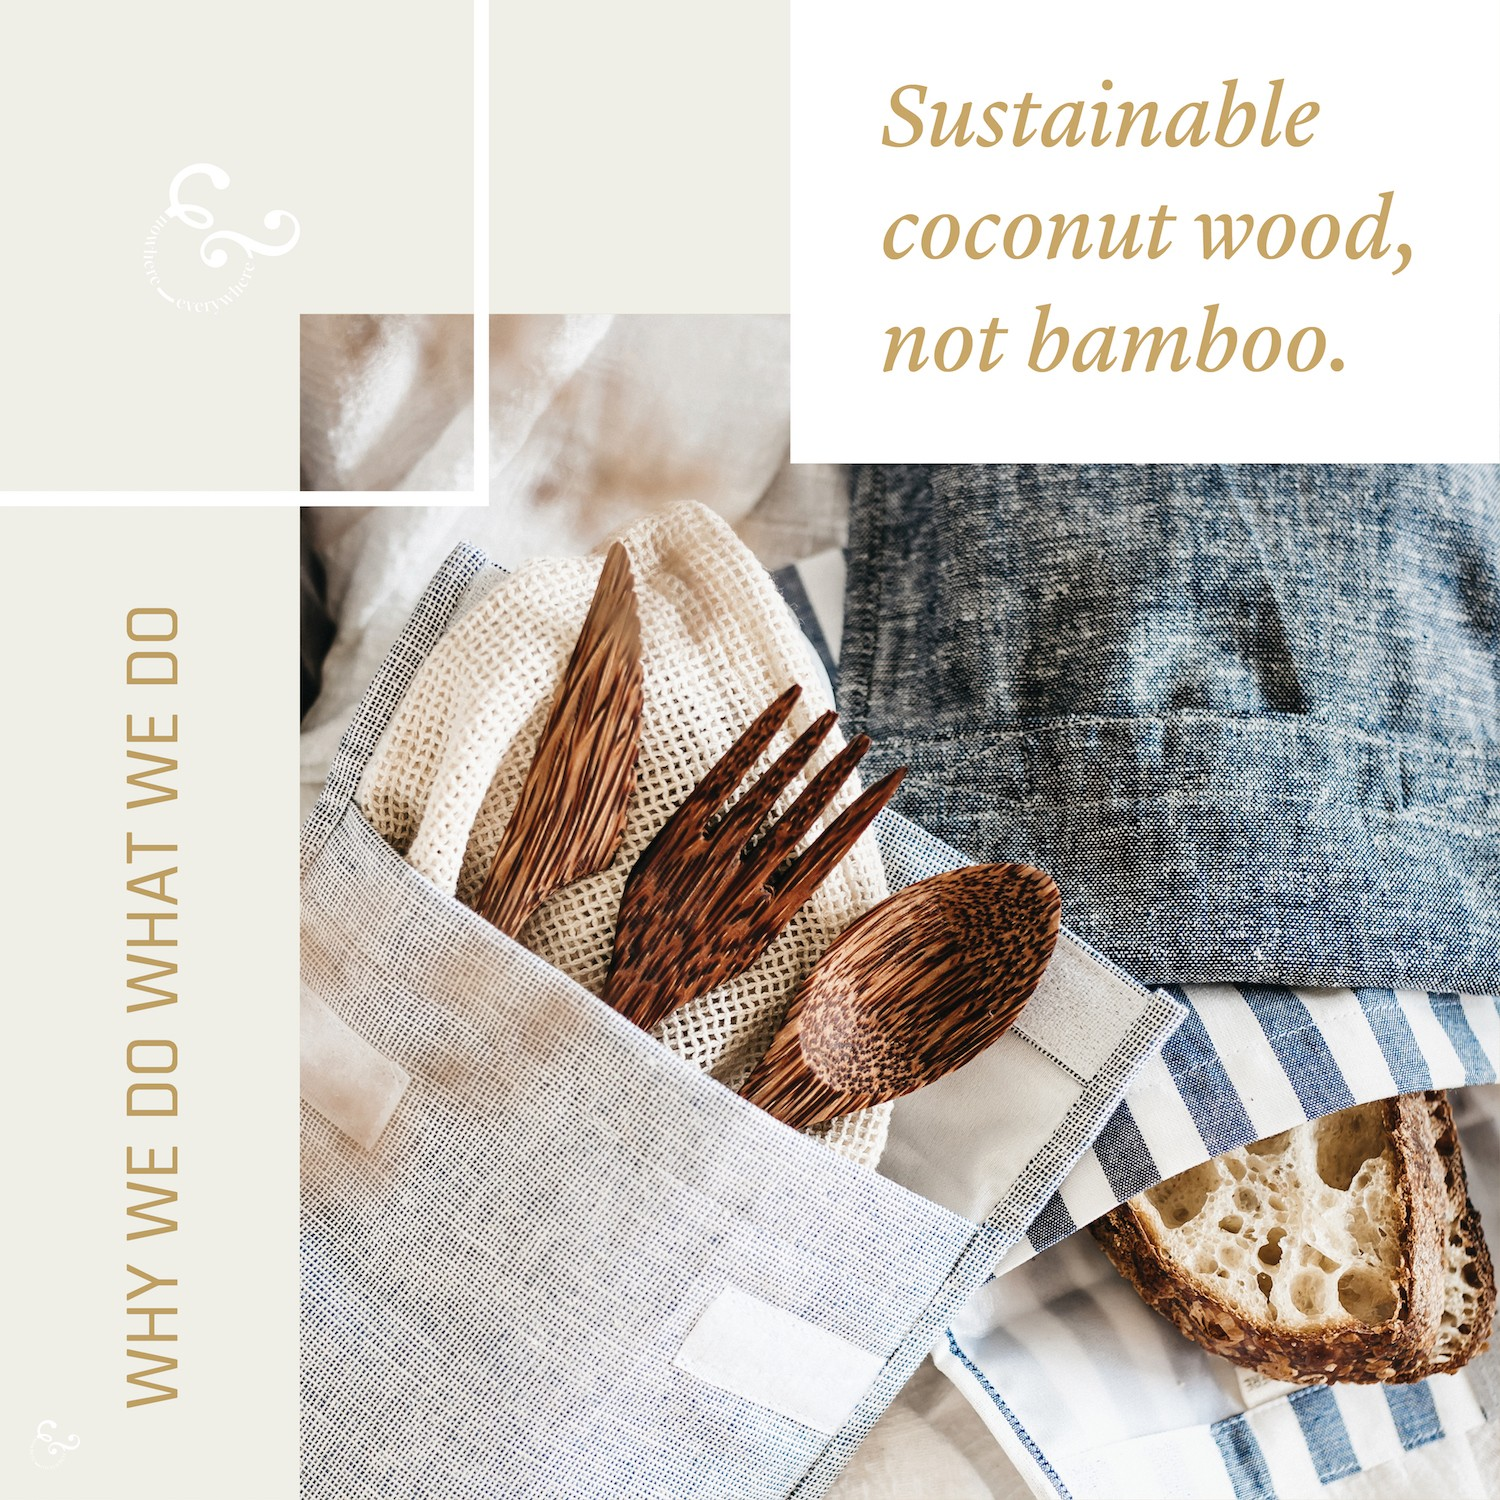 Sustainable coconut wood cutlery not bamboo - - Nowhere & Everywhere Ethical Sustainable Goods Products Australia UK USA New Zealand Canada The Netherlands Lisande Lis Dingjan